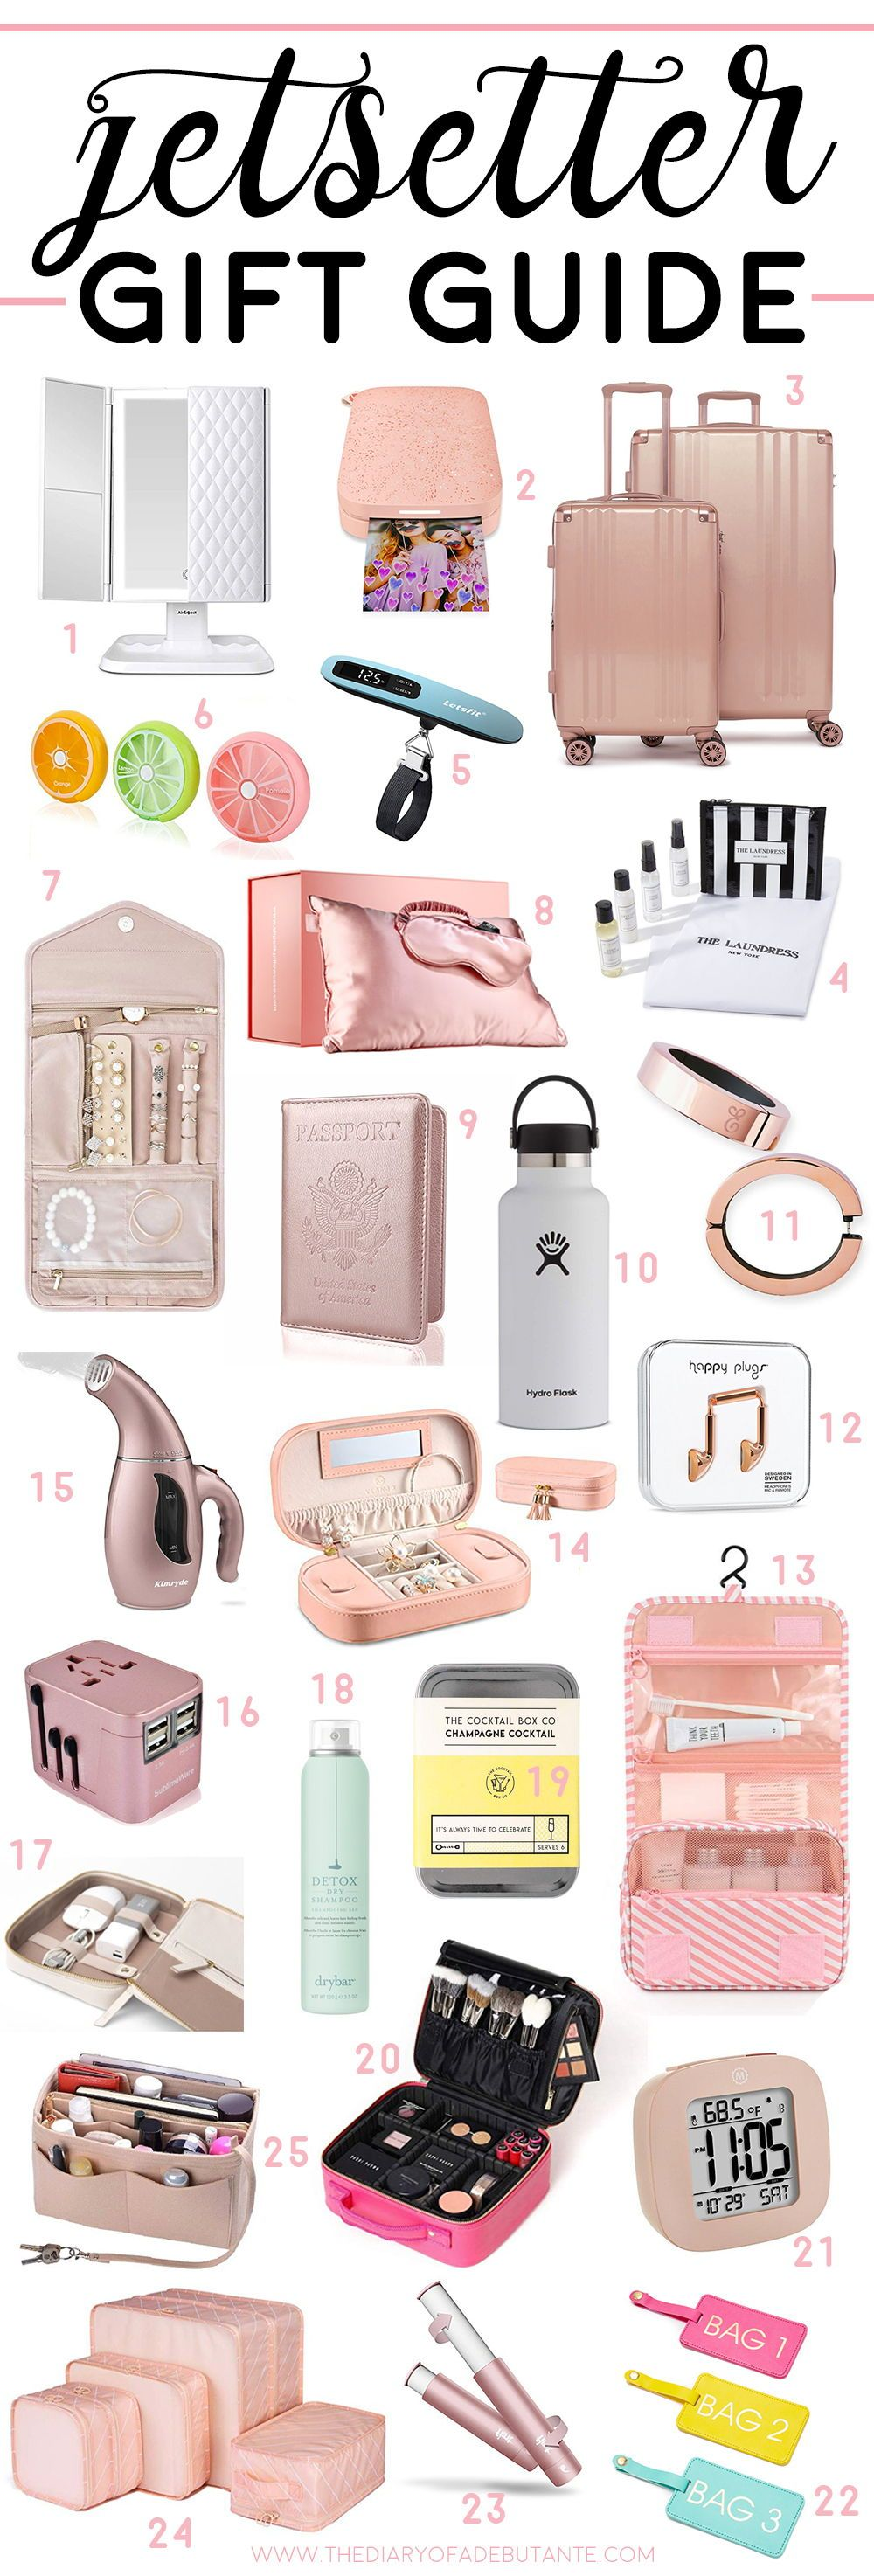 Gifts for Wanderlusters: 25 Handy Travel Gifts for Savvy Explorers